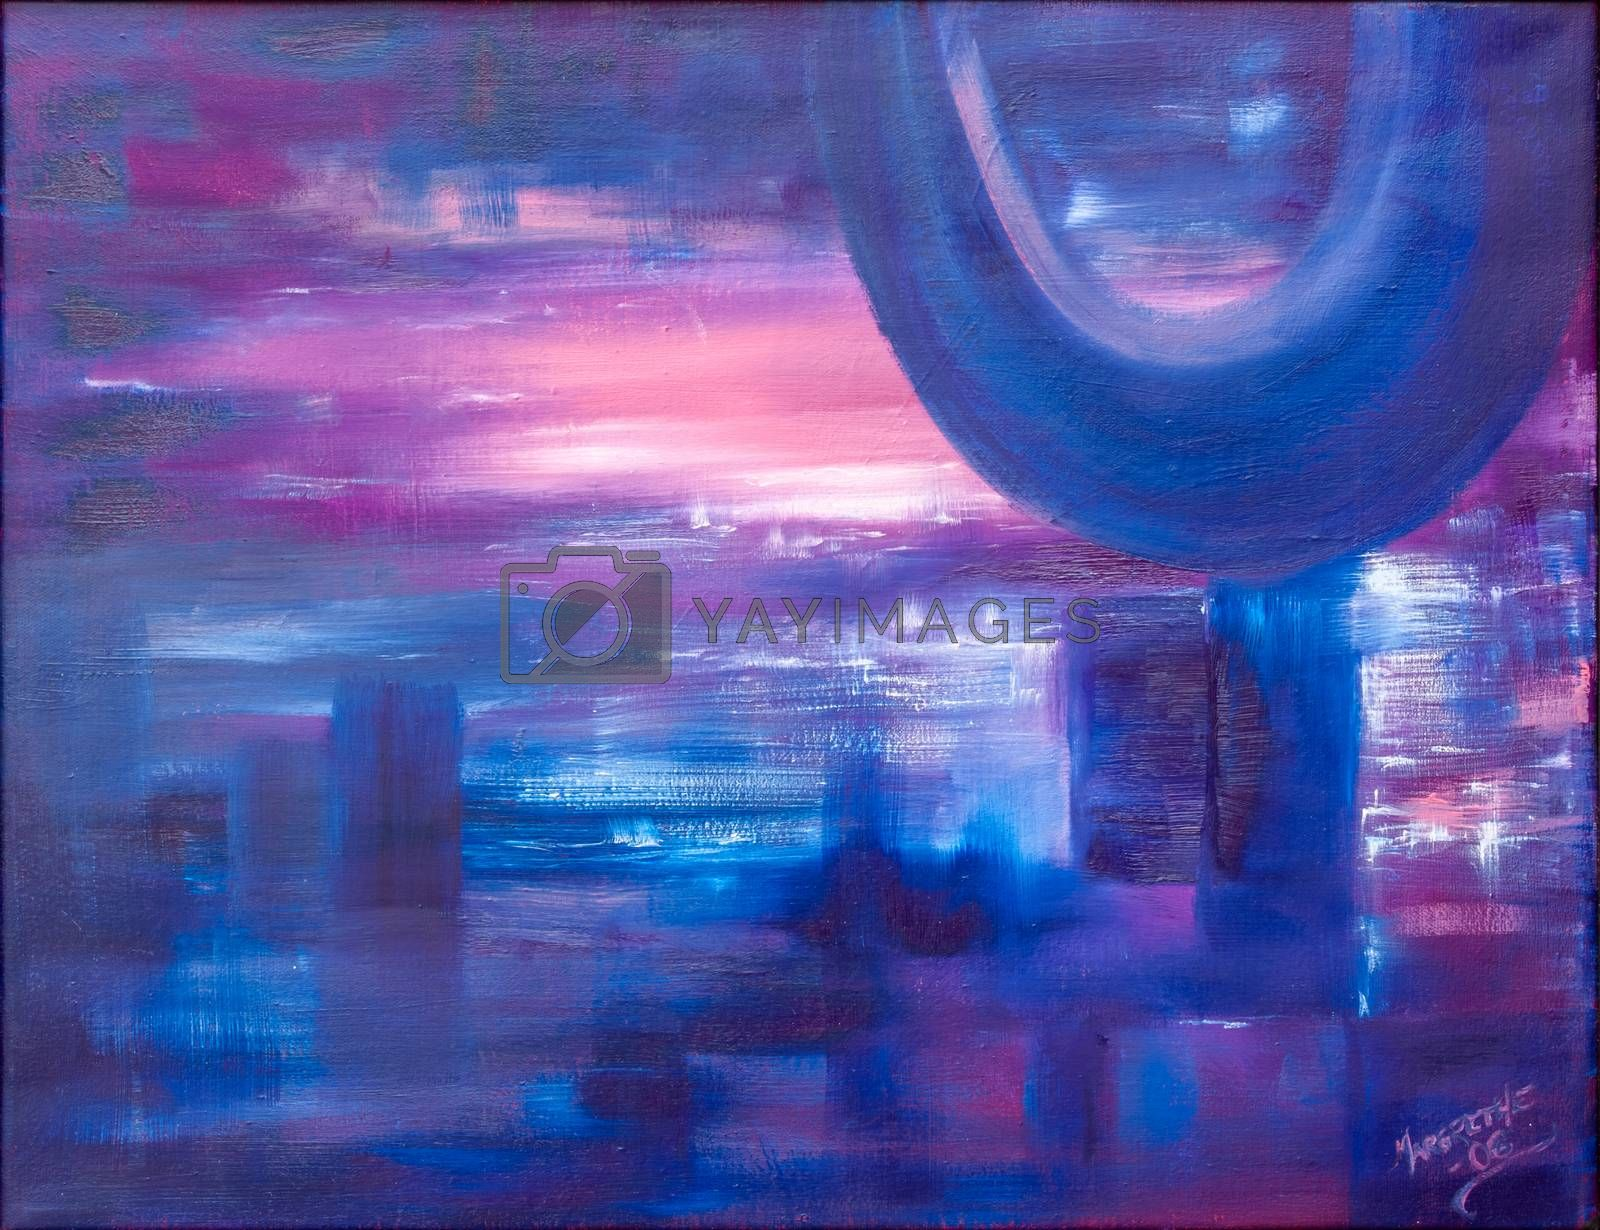 Evening blue, landscape figurative and none figurative. Oil painting on canvas.